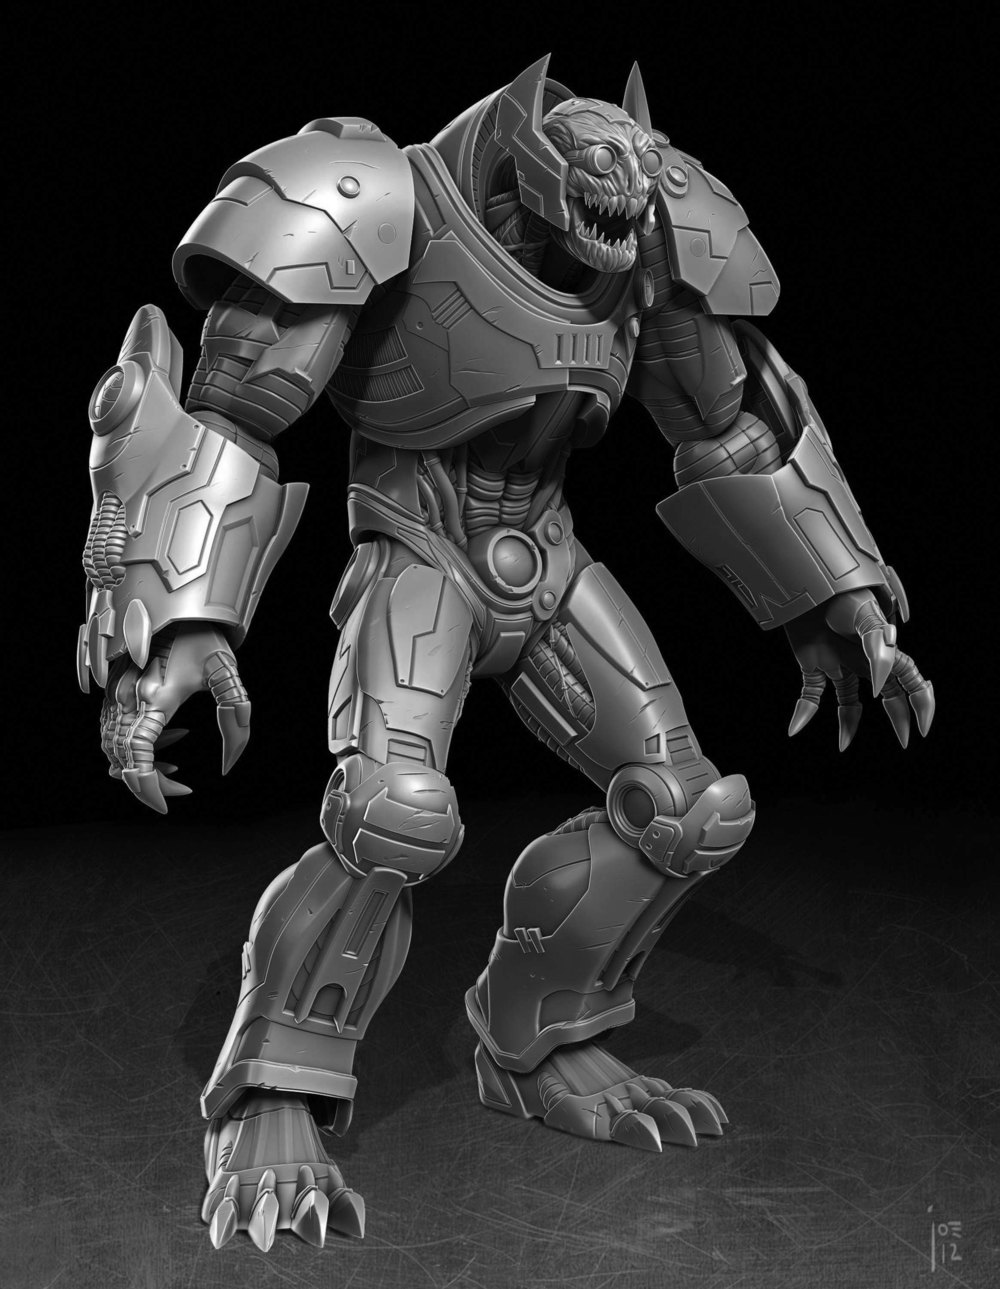 Zbrush was used to create this toy design as well as a design and engineering program called FreeForm for the articulation and a lot of the mechanical cuts. © DC Comics